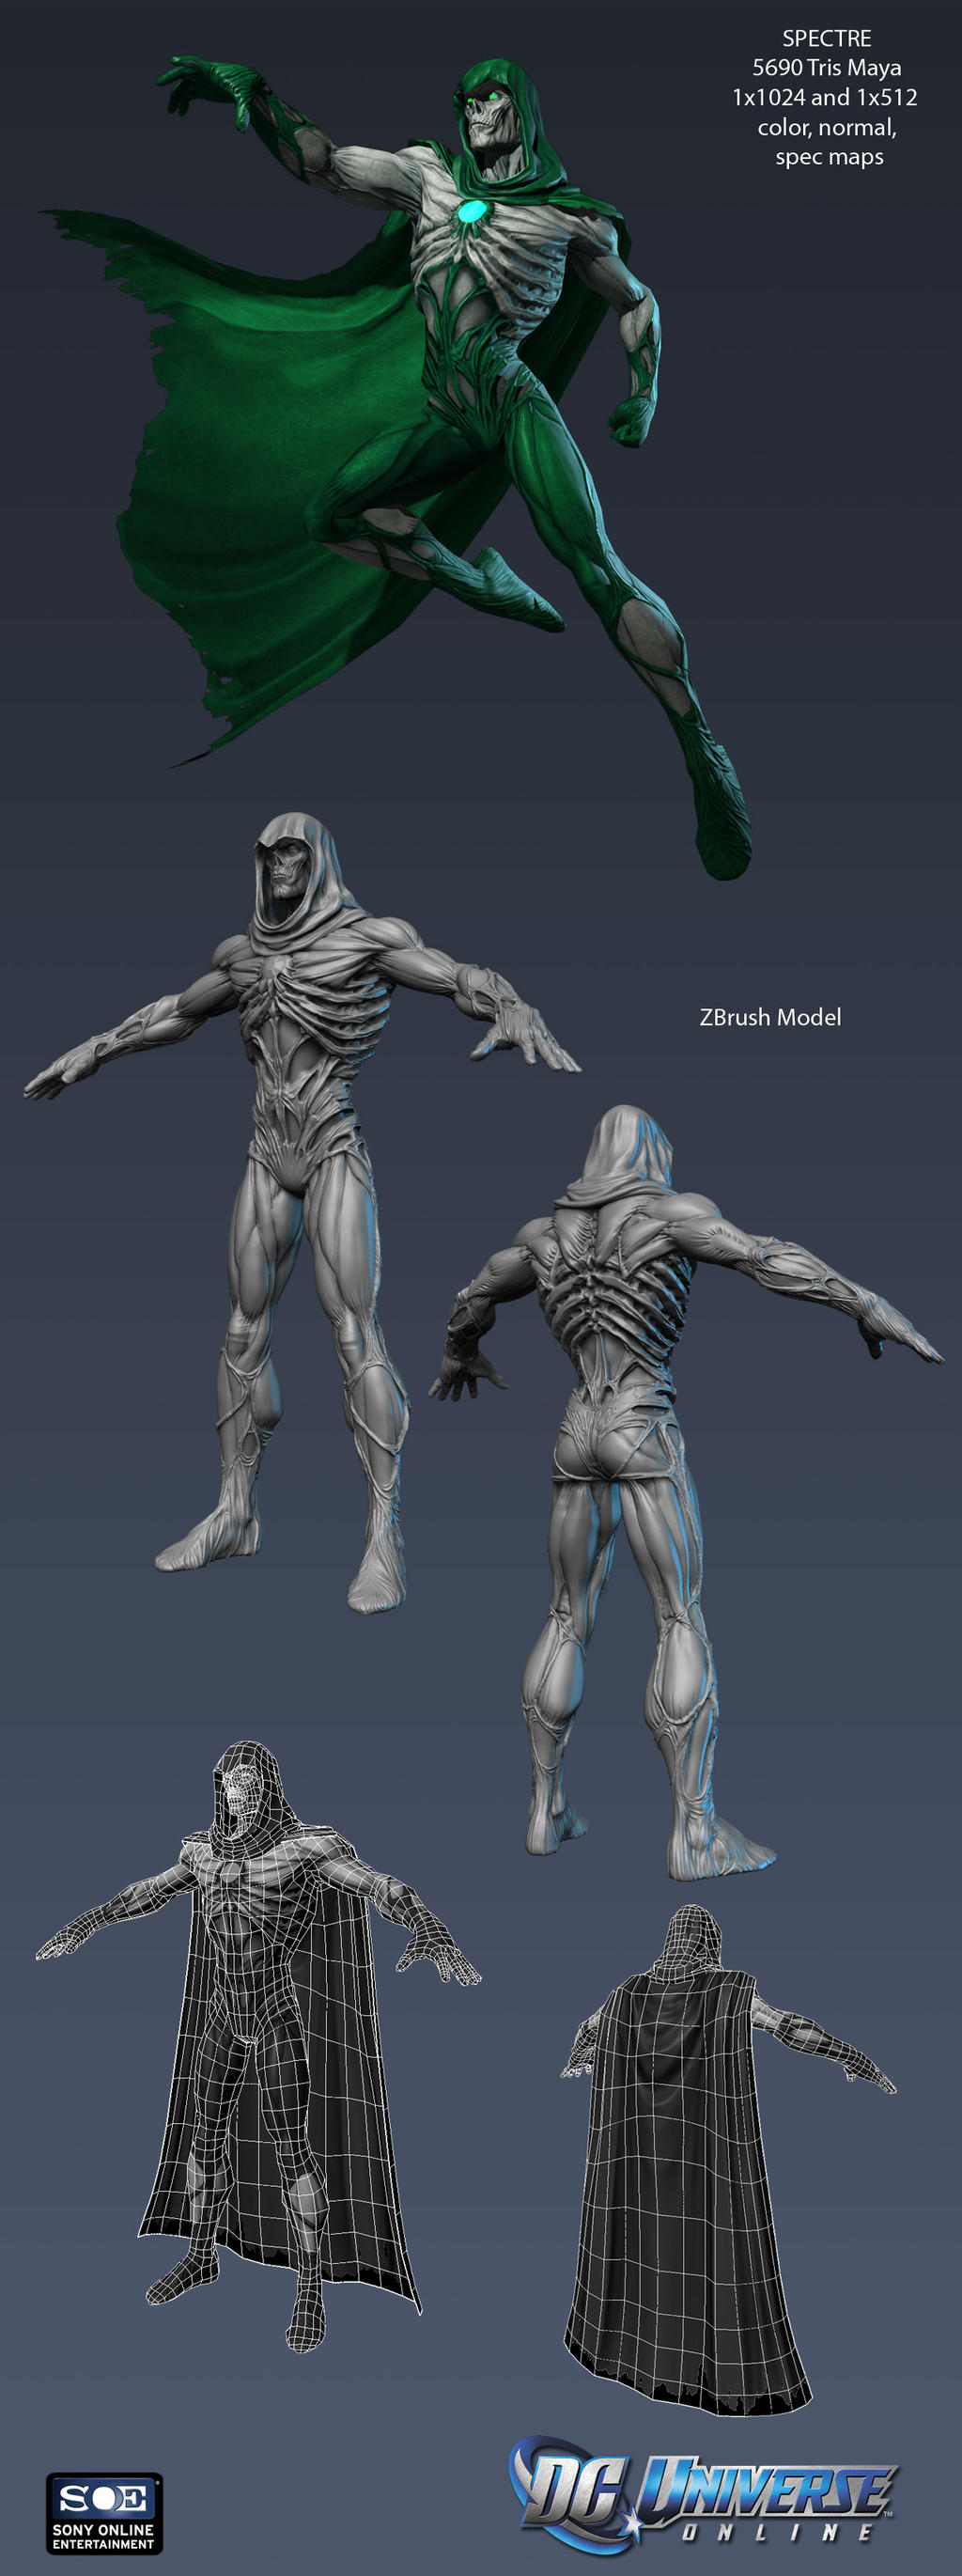 Game Concept art thread | DC Universe Online Forums